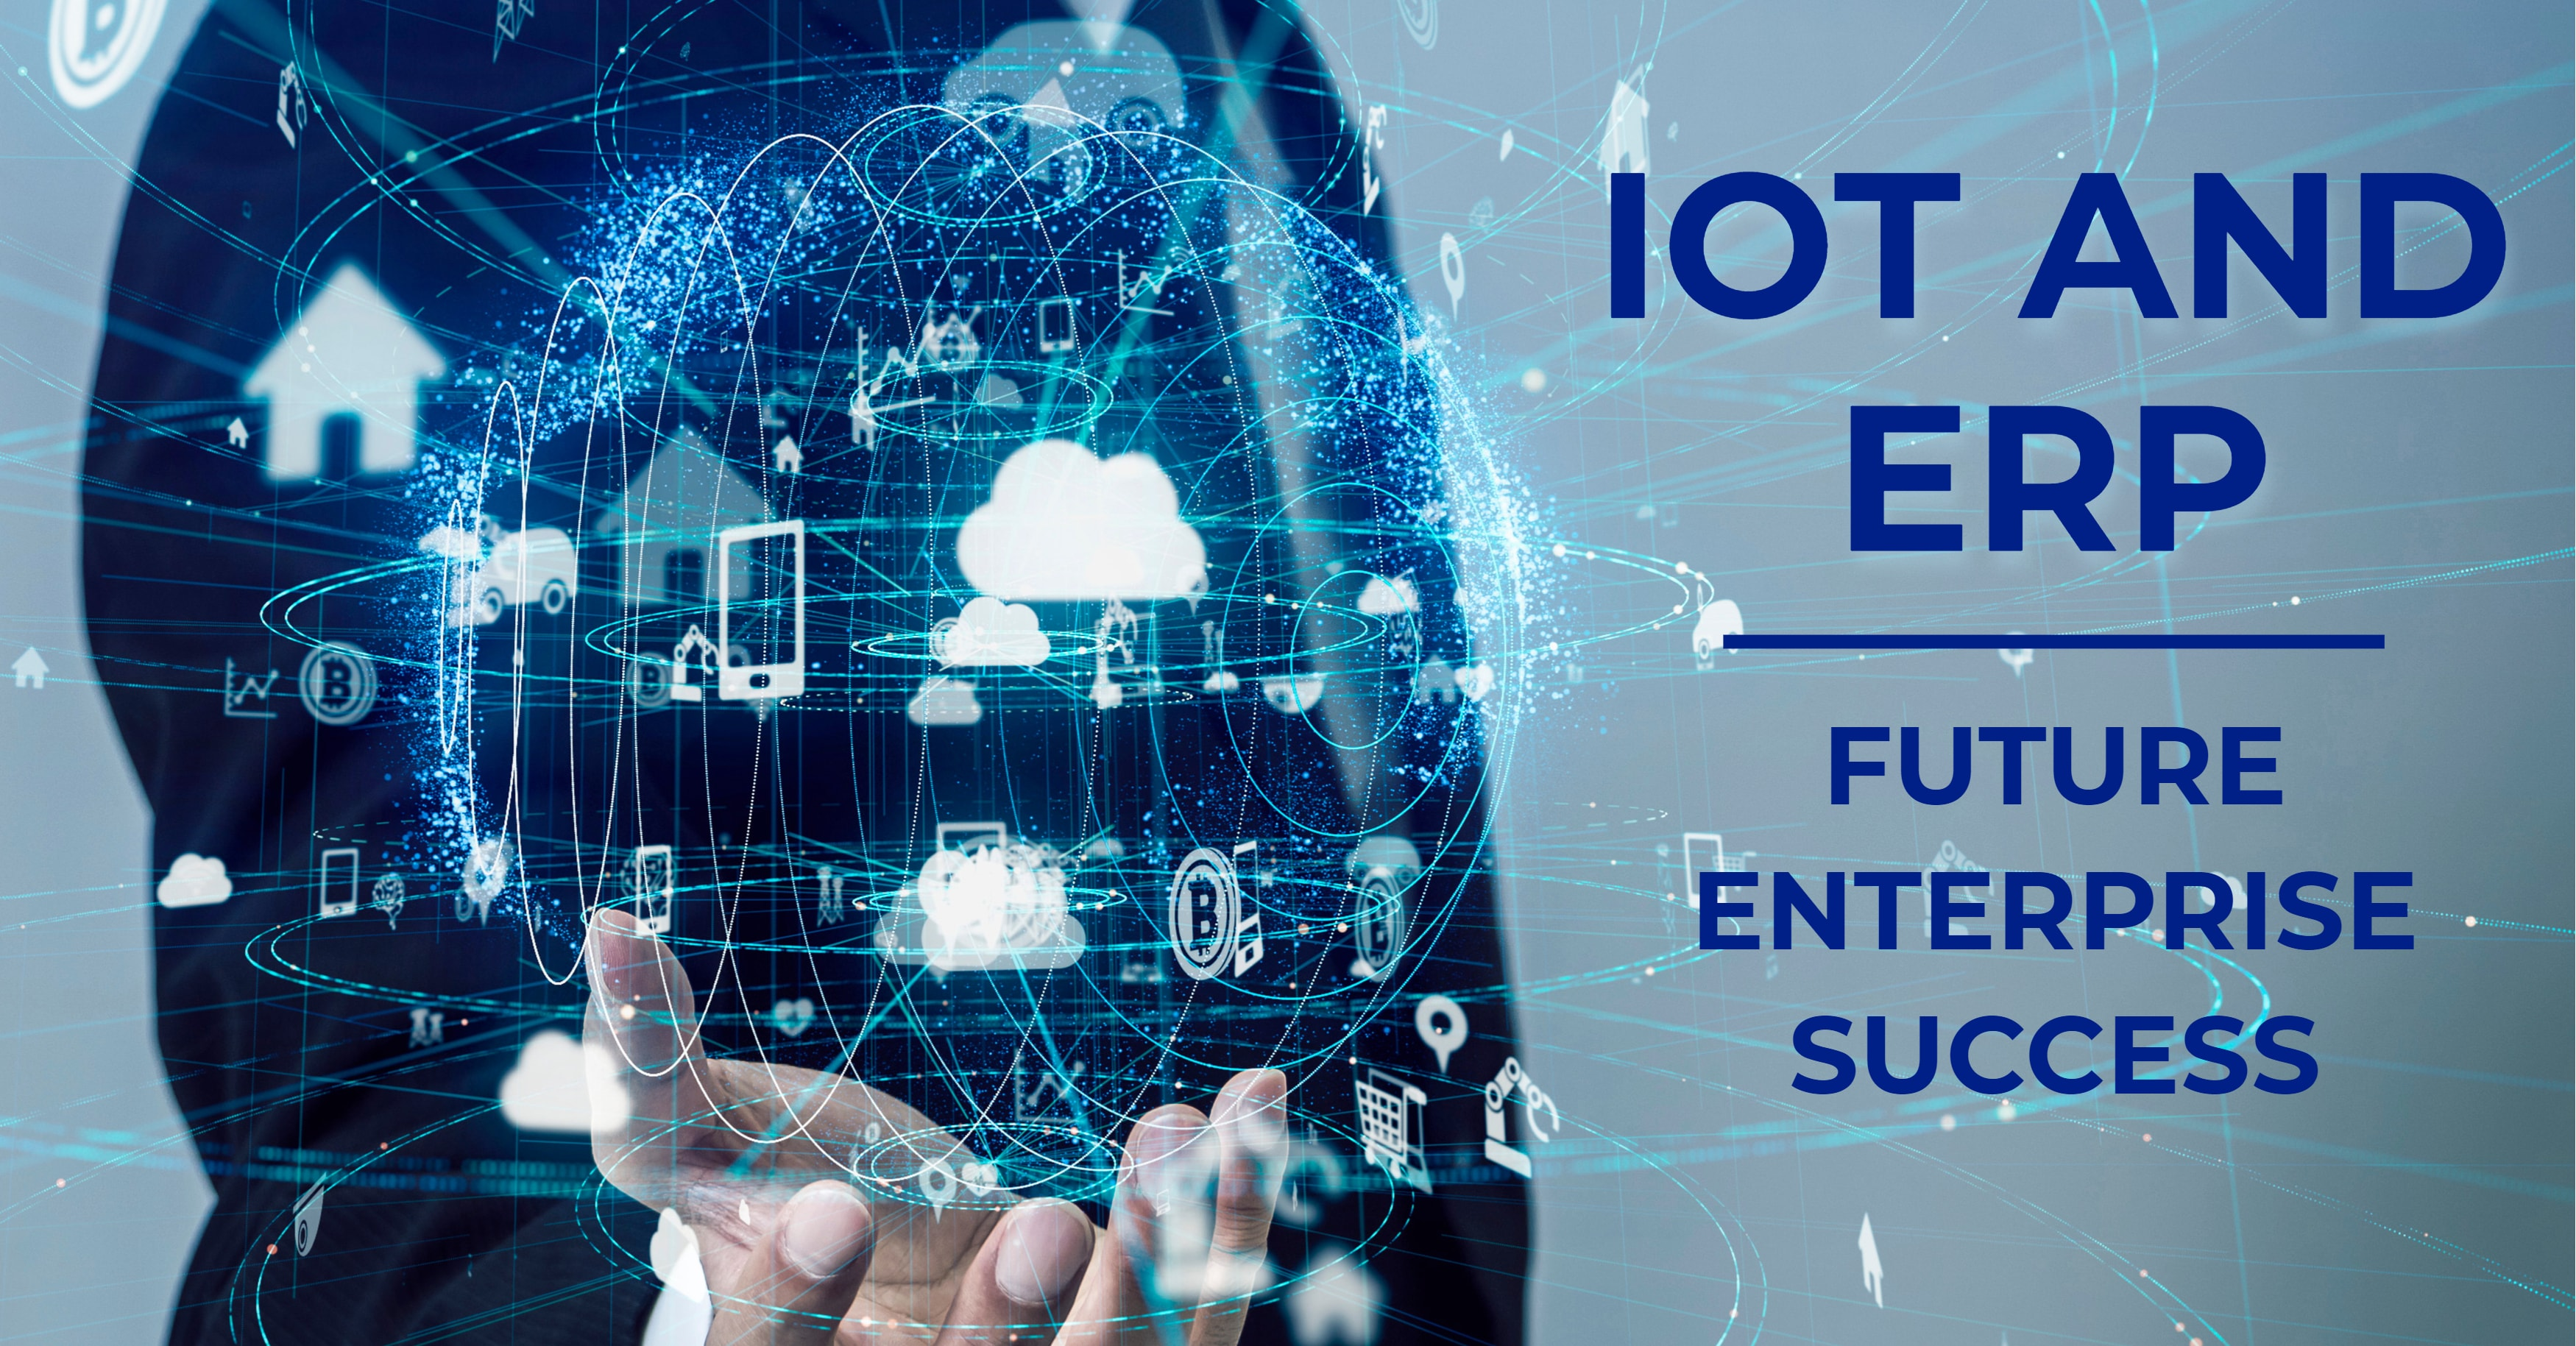 IoT and ERP: The Keys to Future Enterprise Success